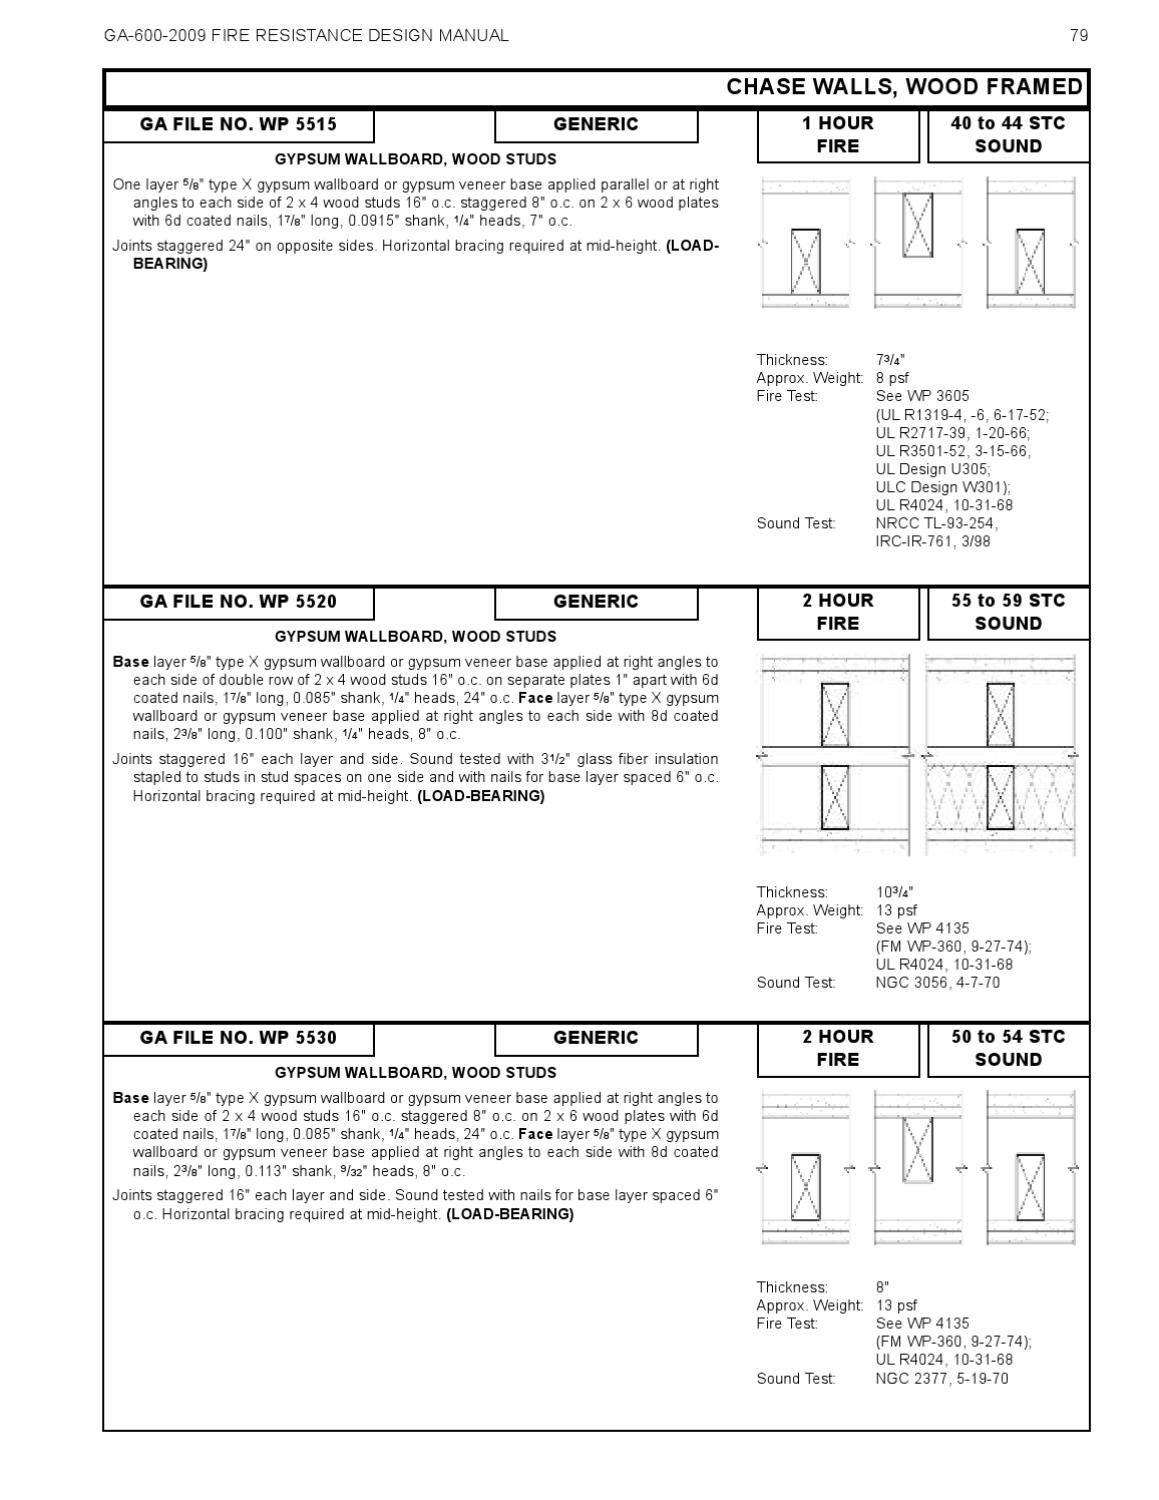 Fire Resistance Design Manual by Macopa - issuu